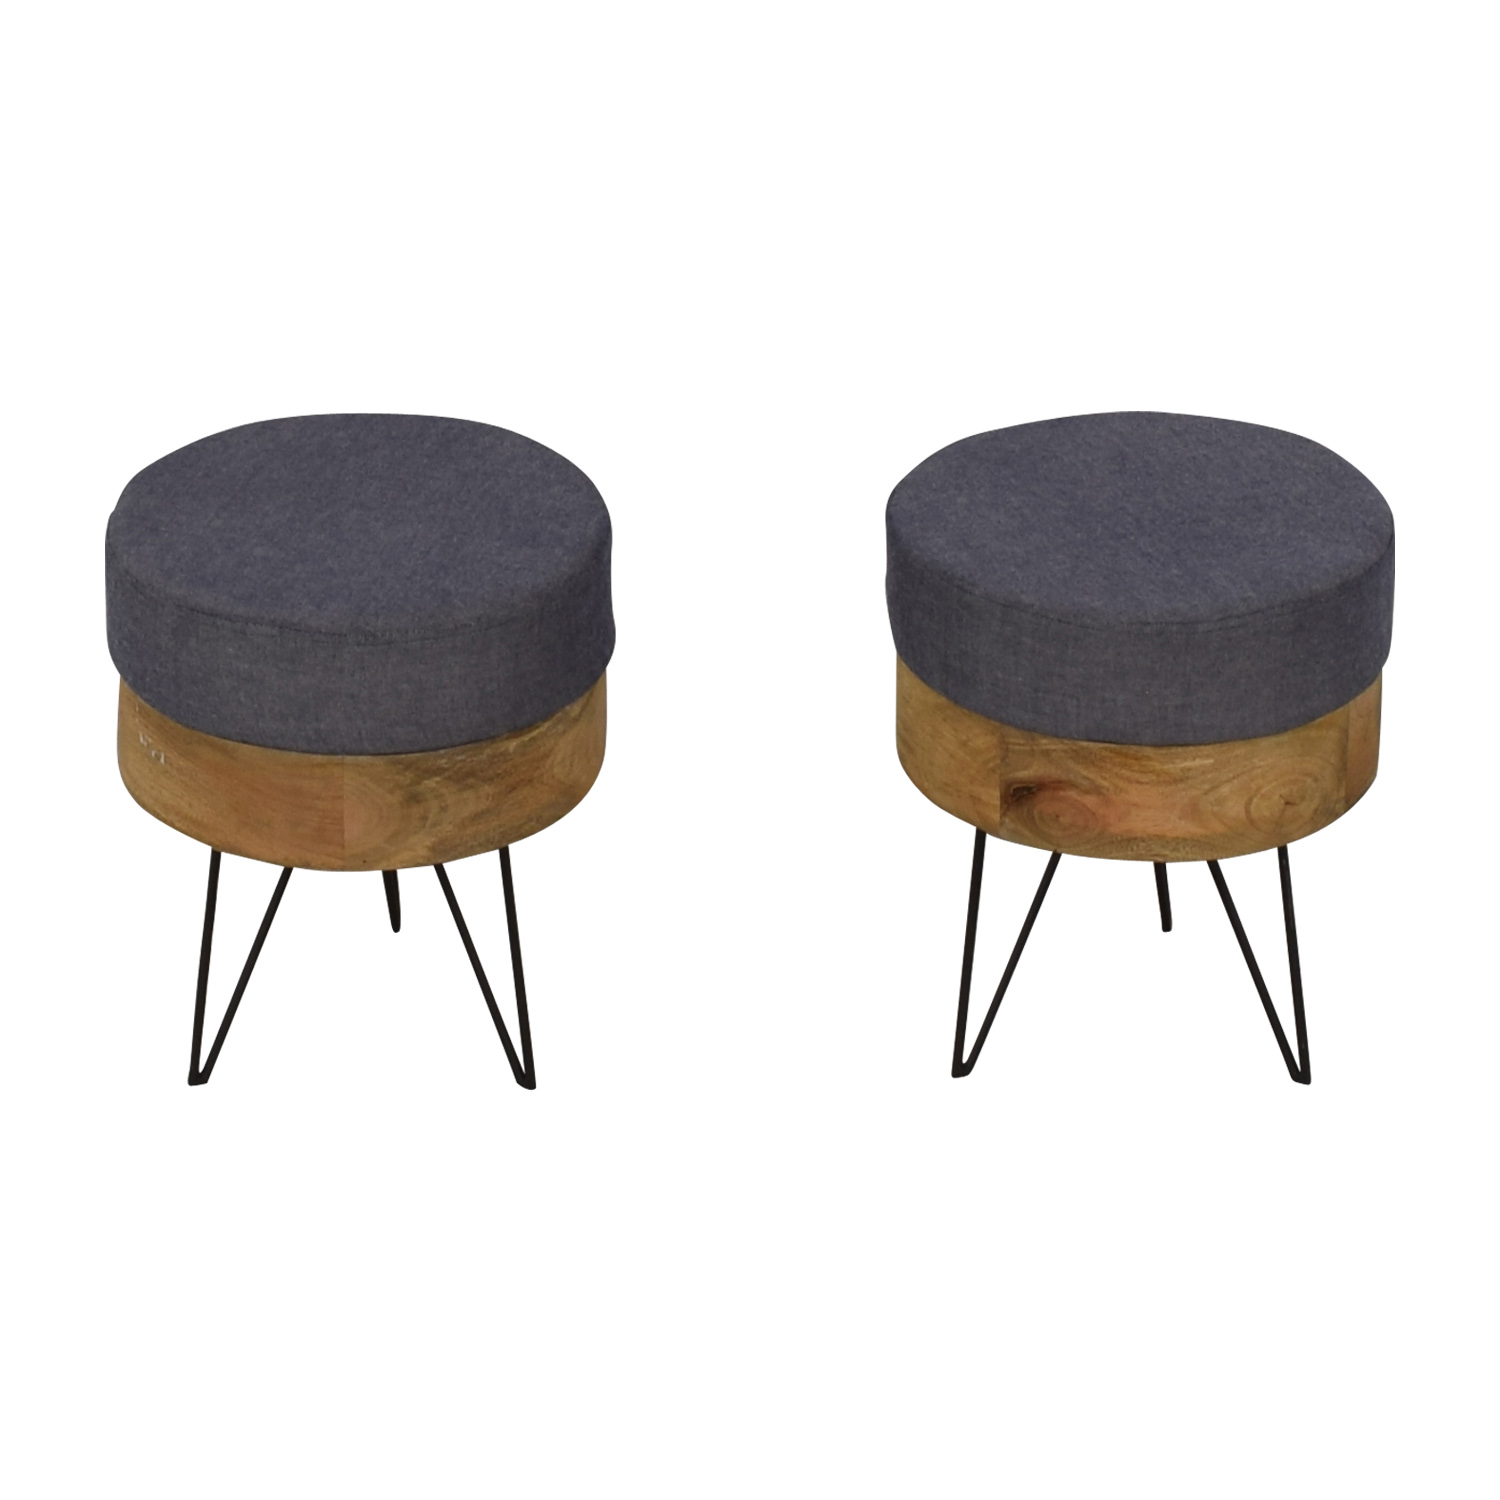 shop Moe's Home Moe's Home Collection Chambray and Wood Round Stools online